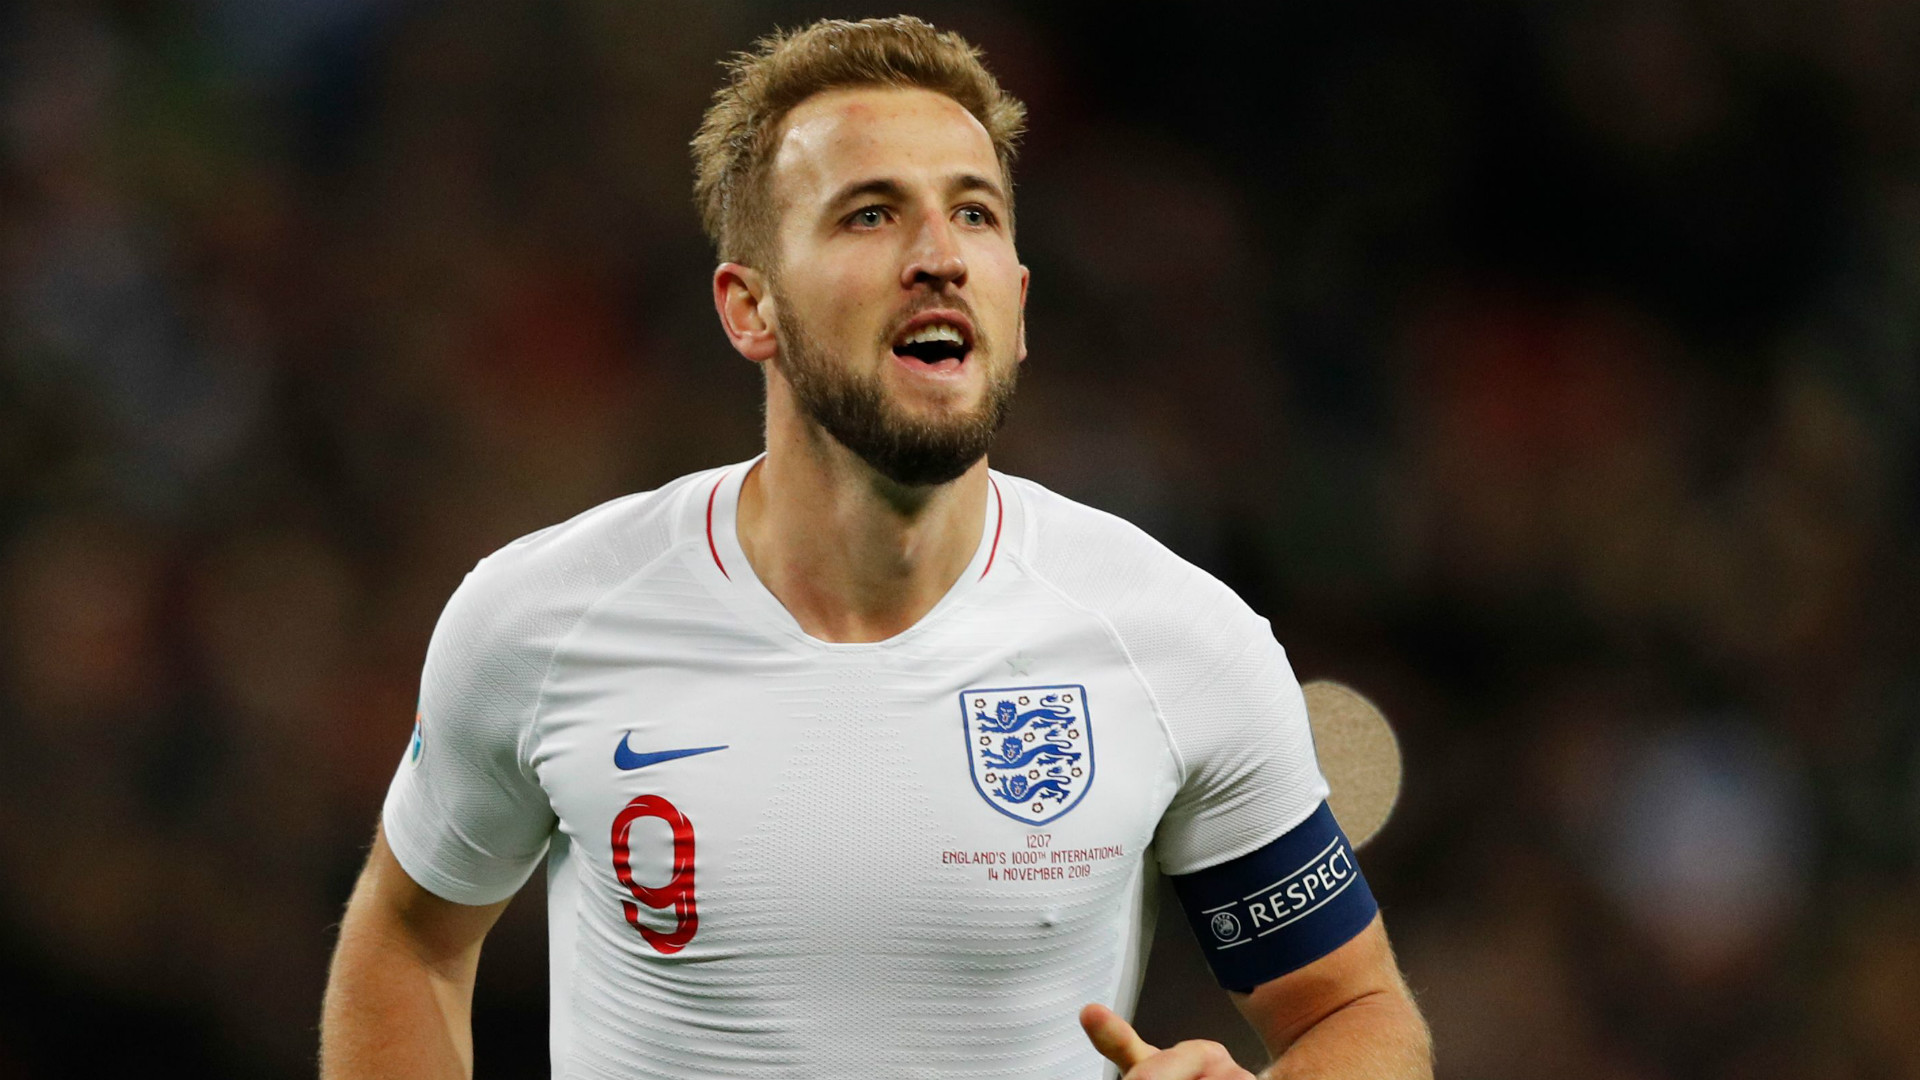 Kane can break Rooney's England record - Shilton